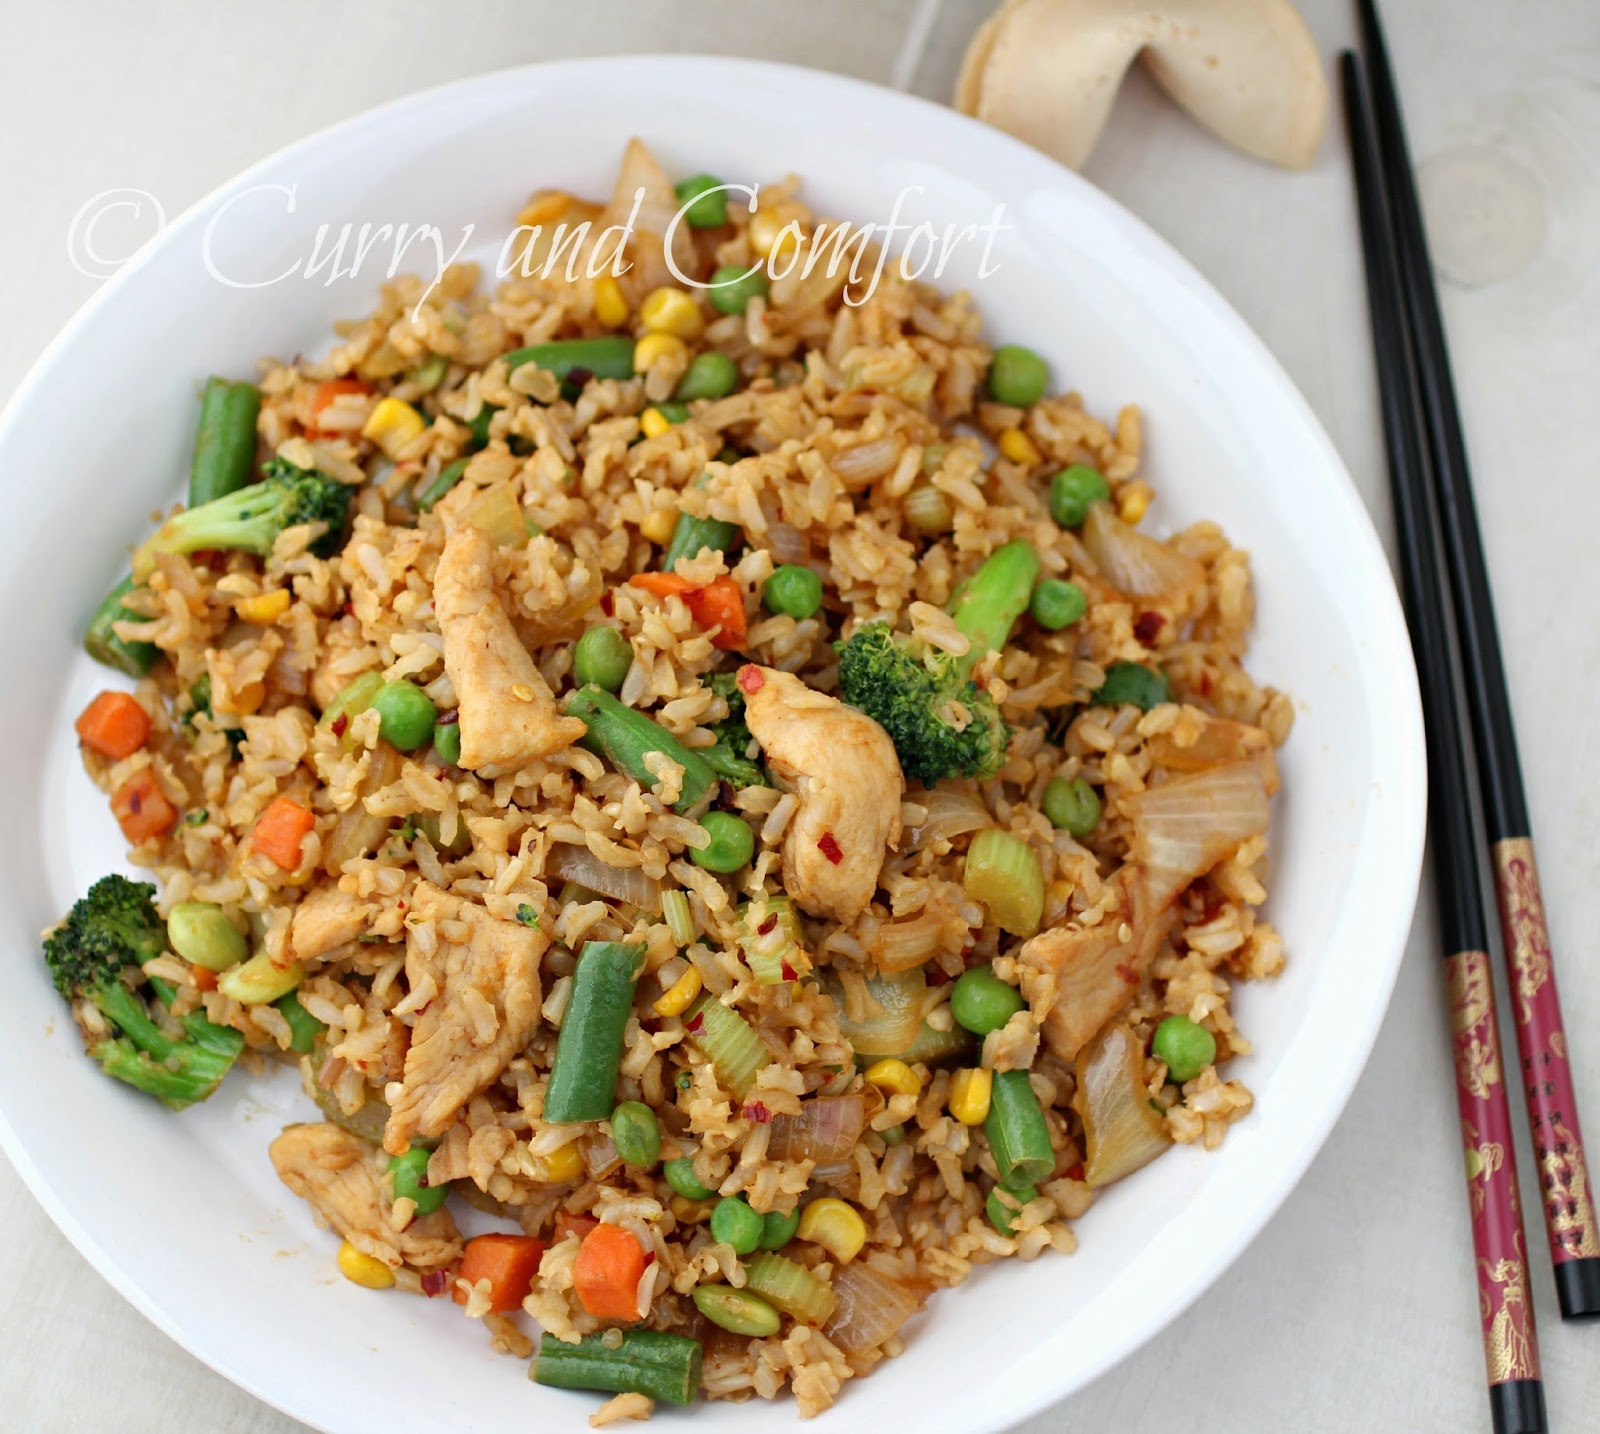 Curry and Comfort: Quick Chicken Fried Rice